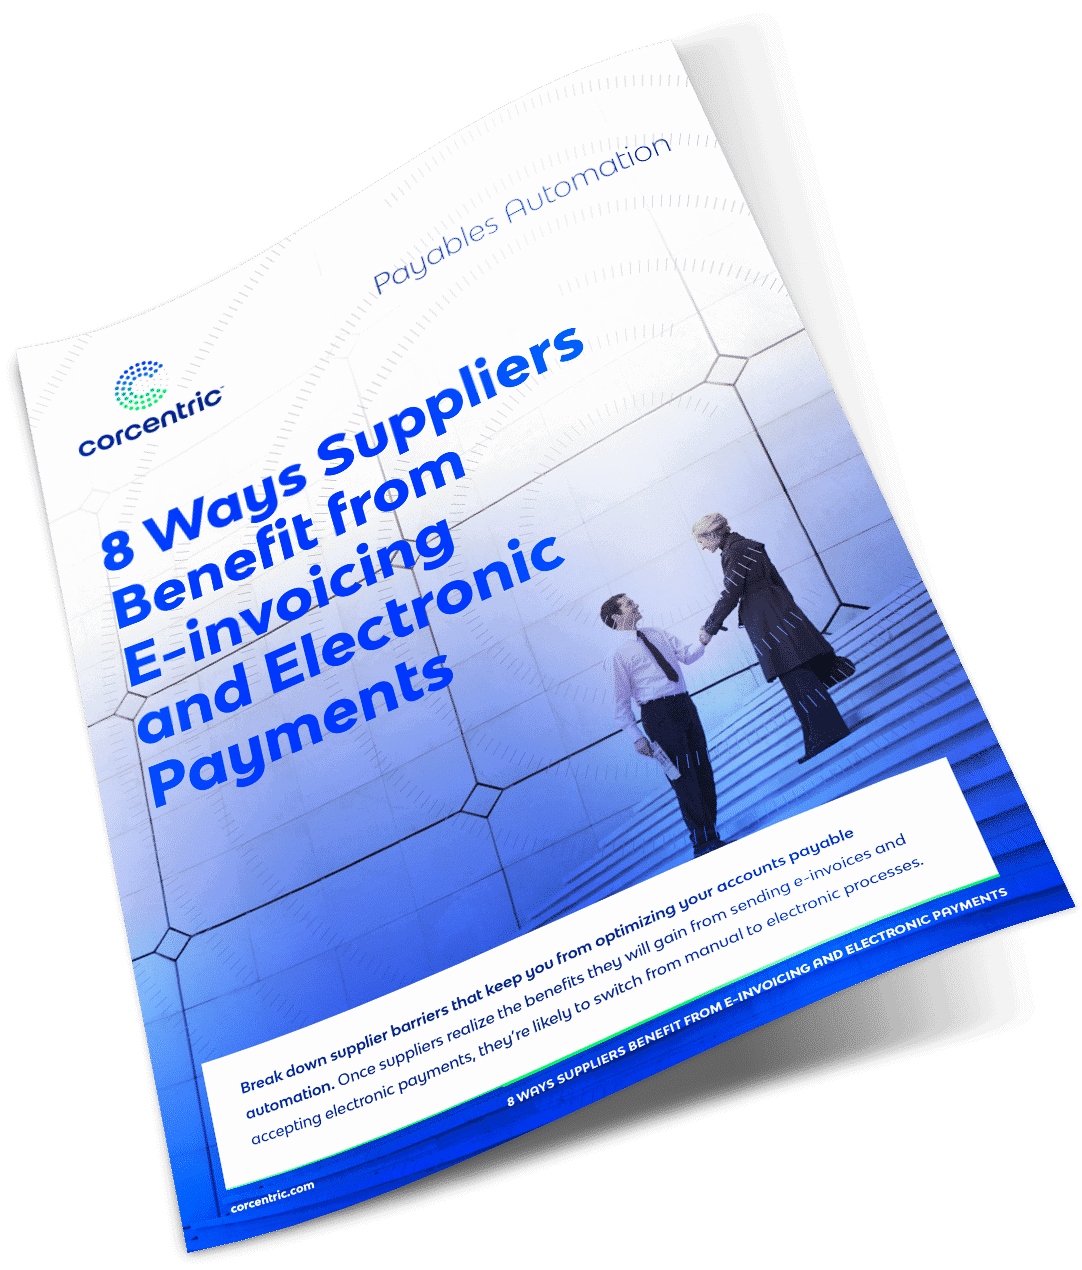 white-paper-8-ways-suppliers-benefit-from-e-invoicing-and-electronic-payments-asset